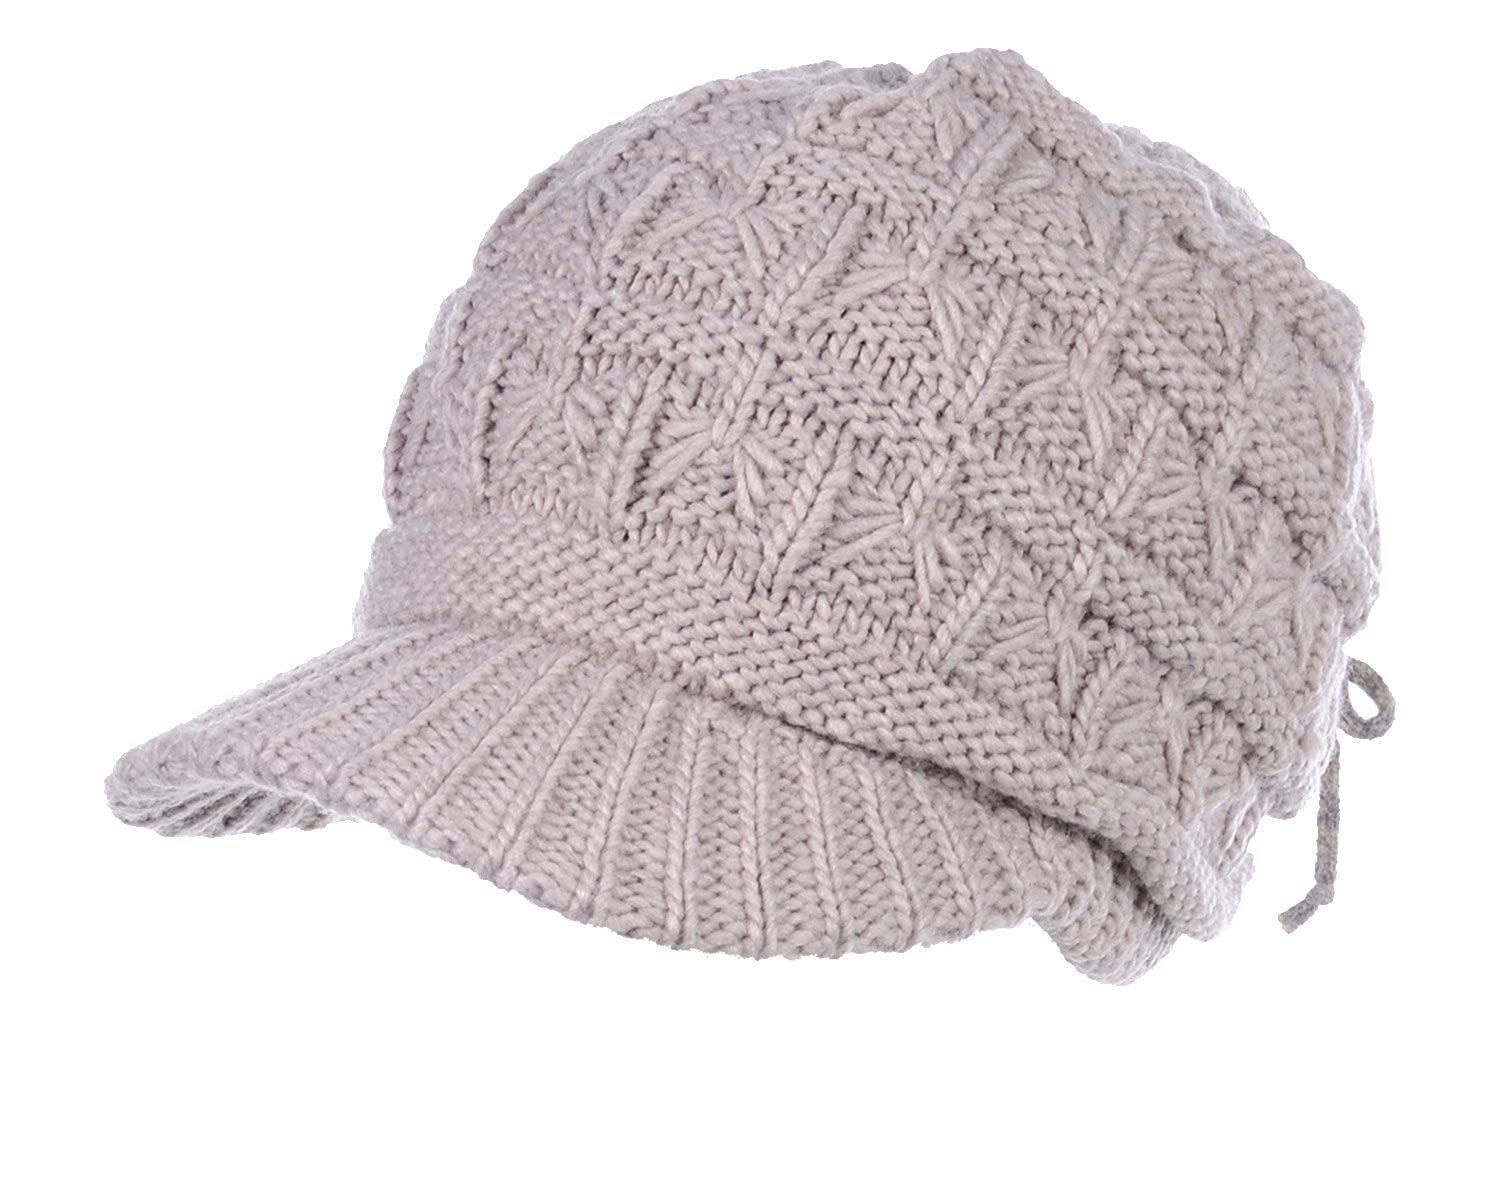 f1dadebe227 Imported Size   One size fits most ( Comfortable stretchy fit) Soft and  cozy fleece lined hat is design for adding extra warmth in cold weather  days   Keep ...